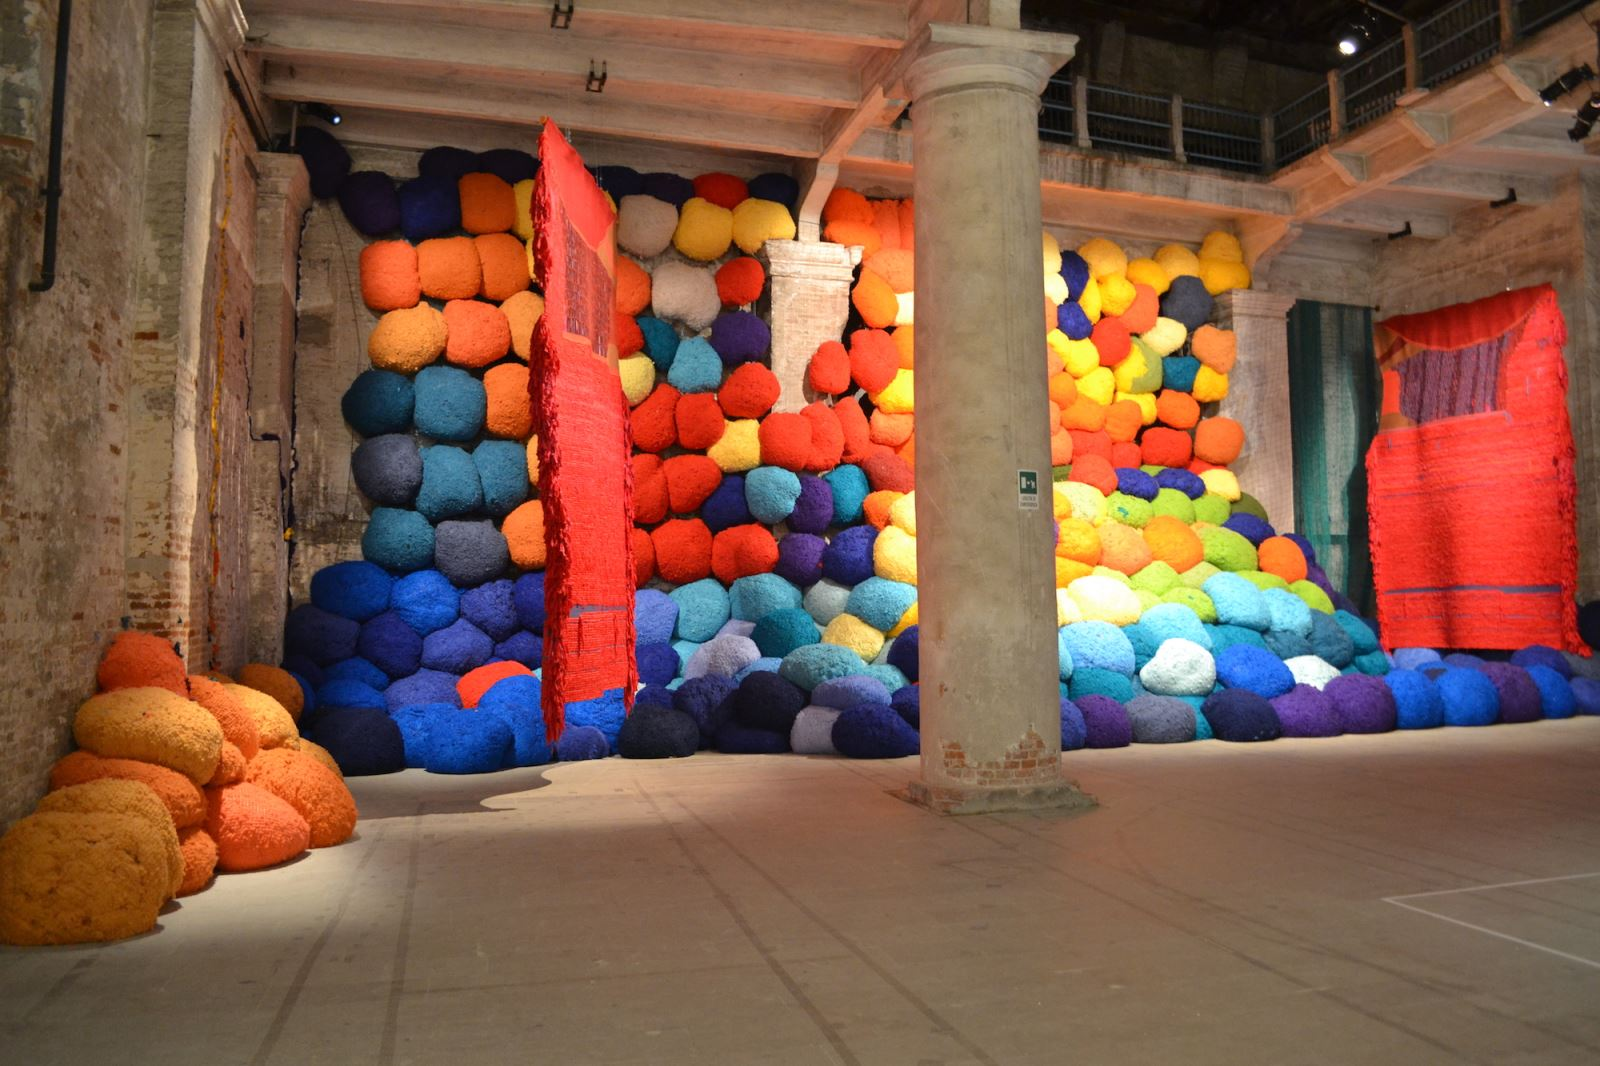 A Look at 'Viva Arte Viva,' the Hippie, Heal-the-World Venice Biennale